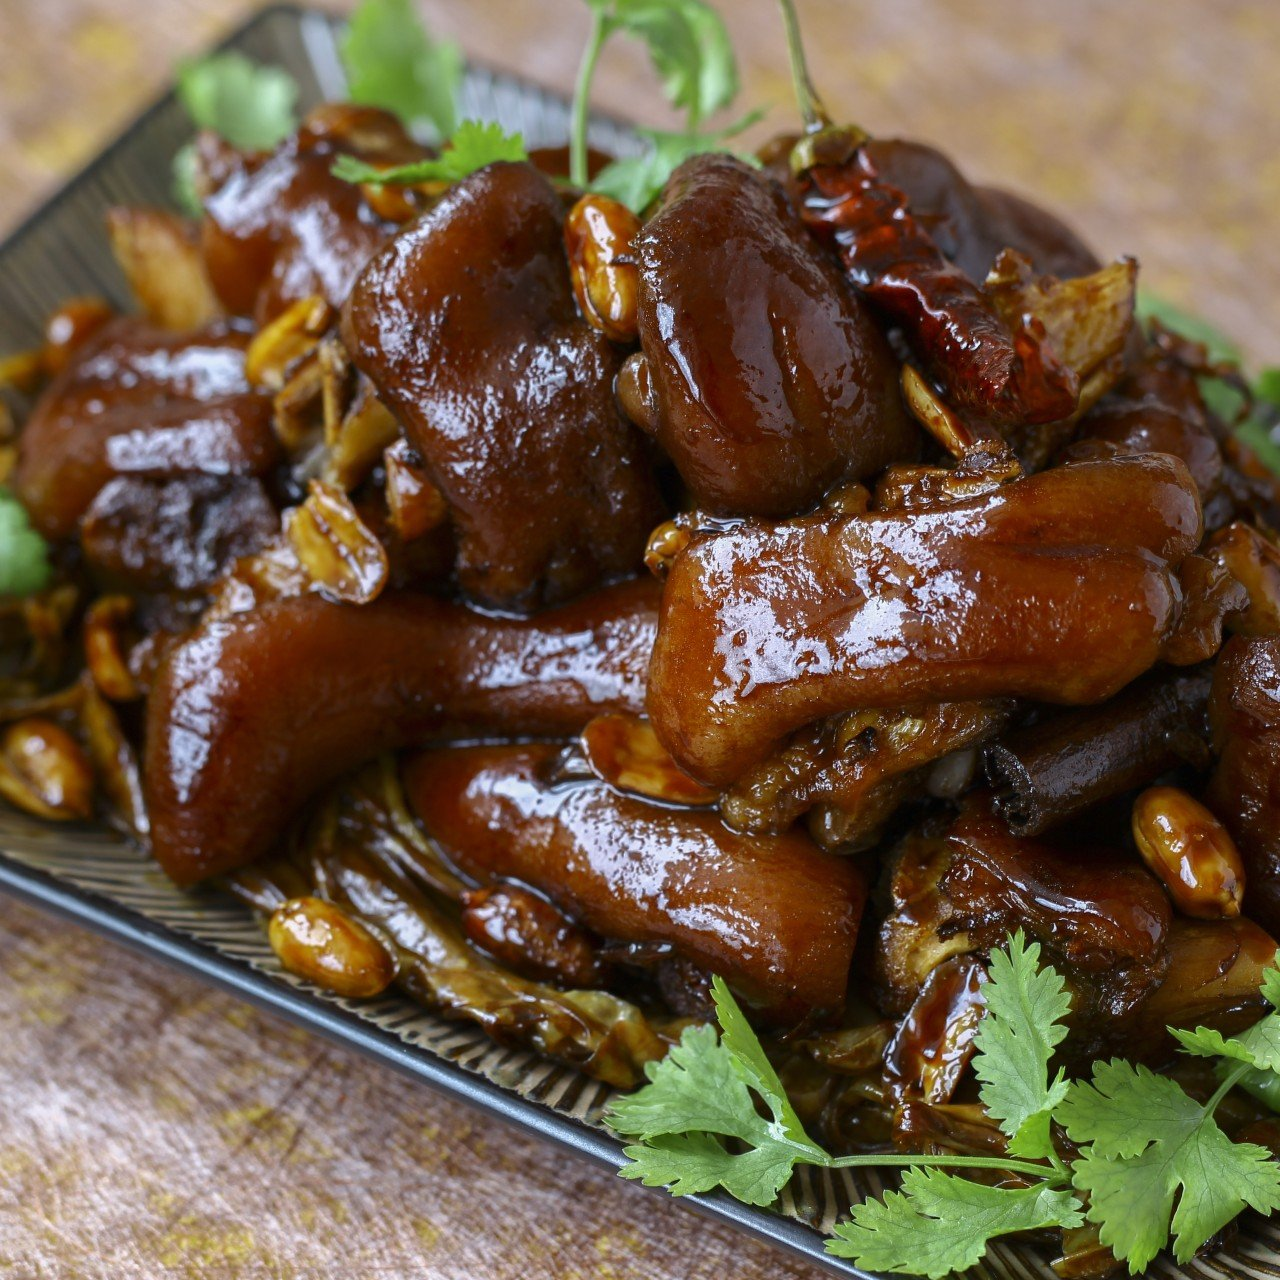 Chinese Braised Pig S Feet With Soy Sauce And Spices Recipe Scmp Cooking